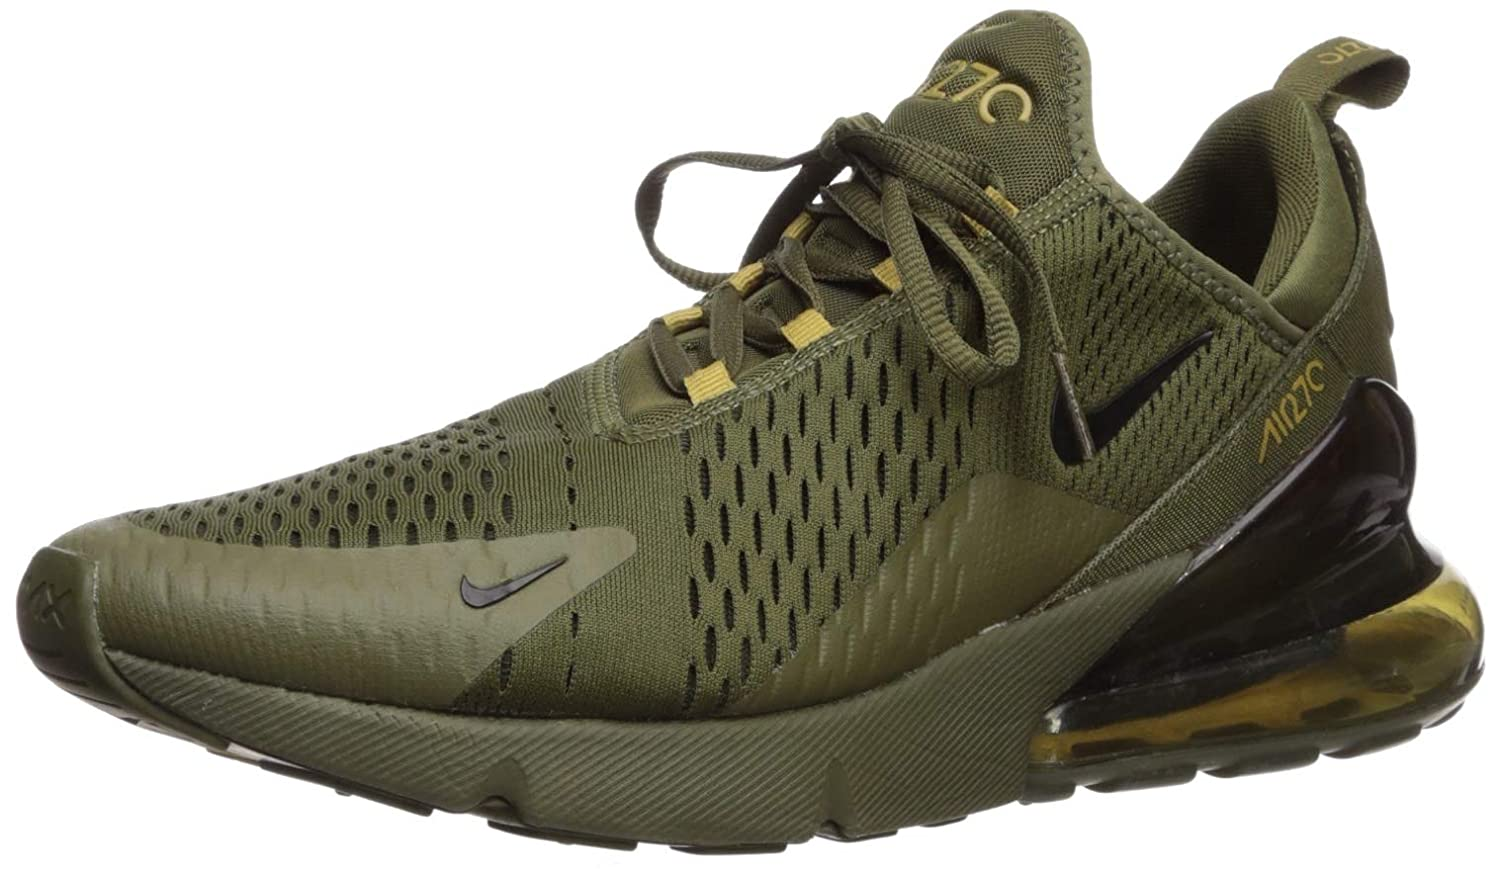 brand new 64573 09512 Nike Men's Air Max 270 Fitness Shoes, Multicolour Black/Olive Canvas 301, 6  UK